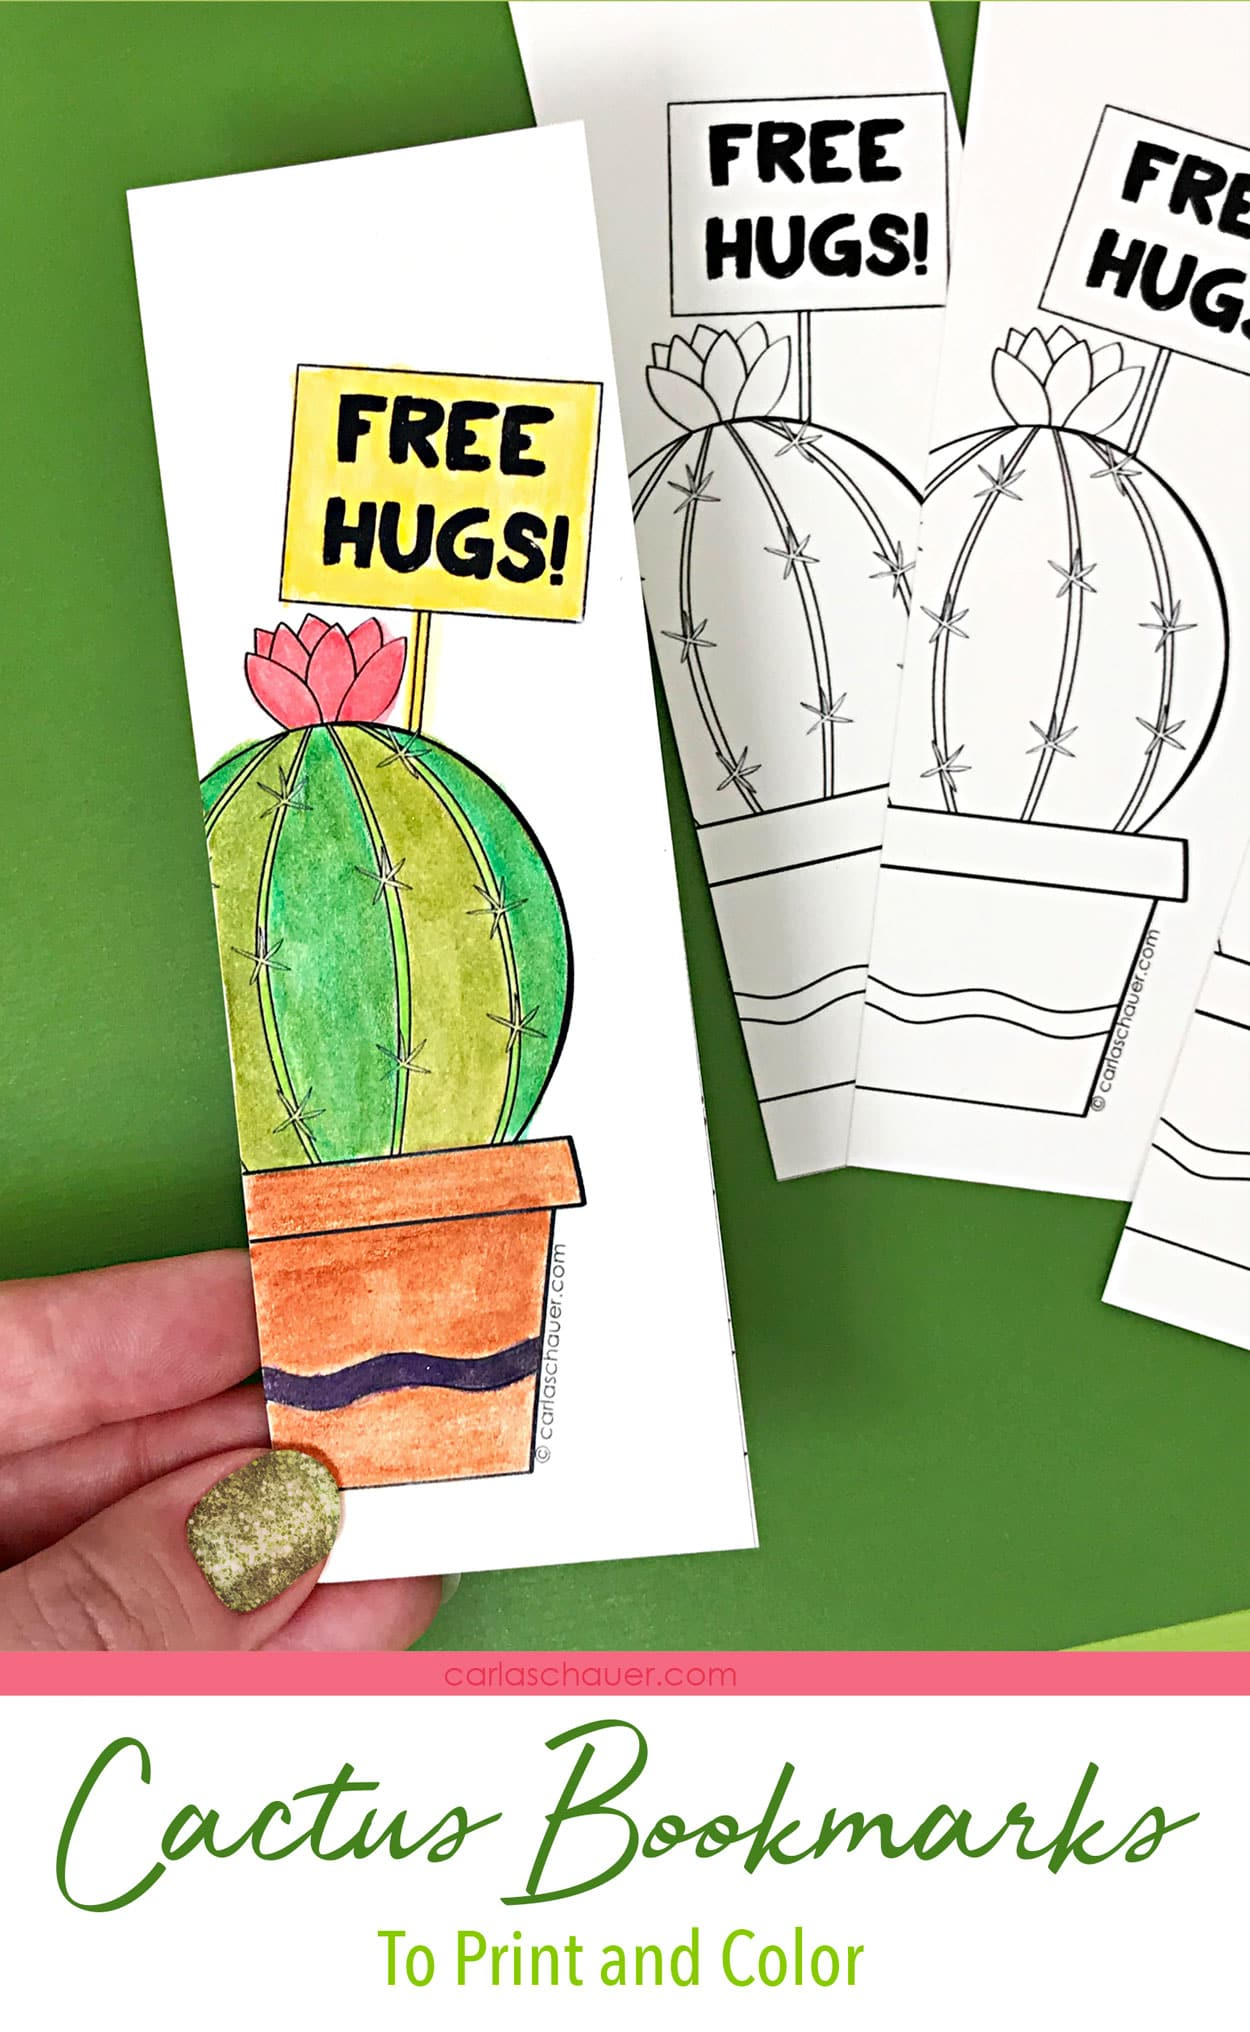 Watercolored and uncolored diy cactus bookmarks on green background.